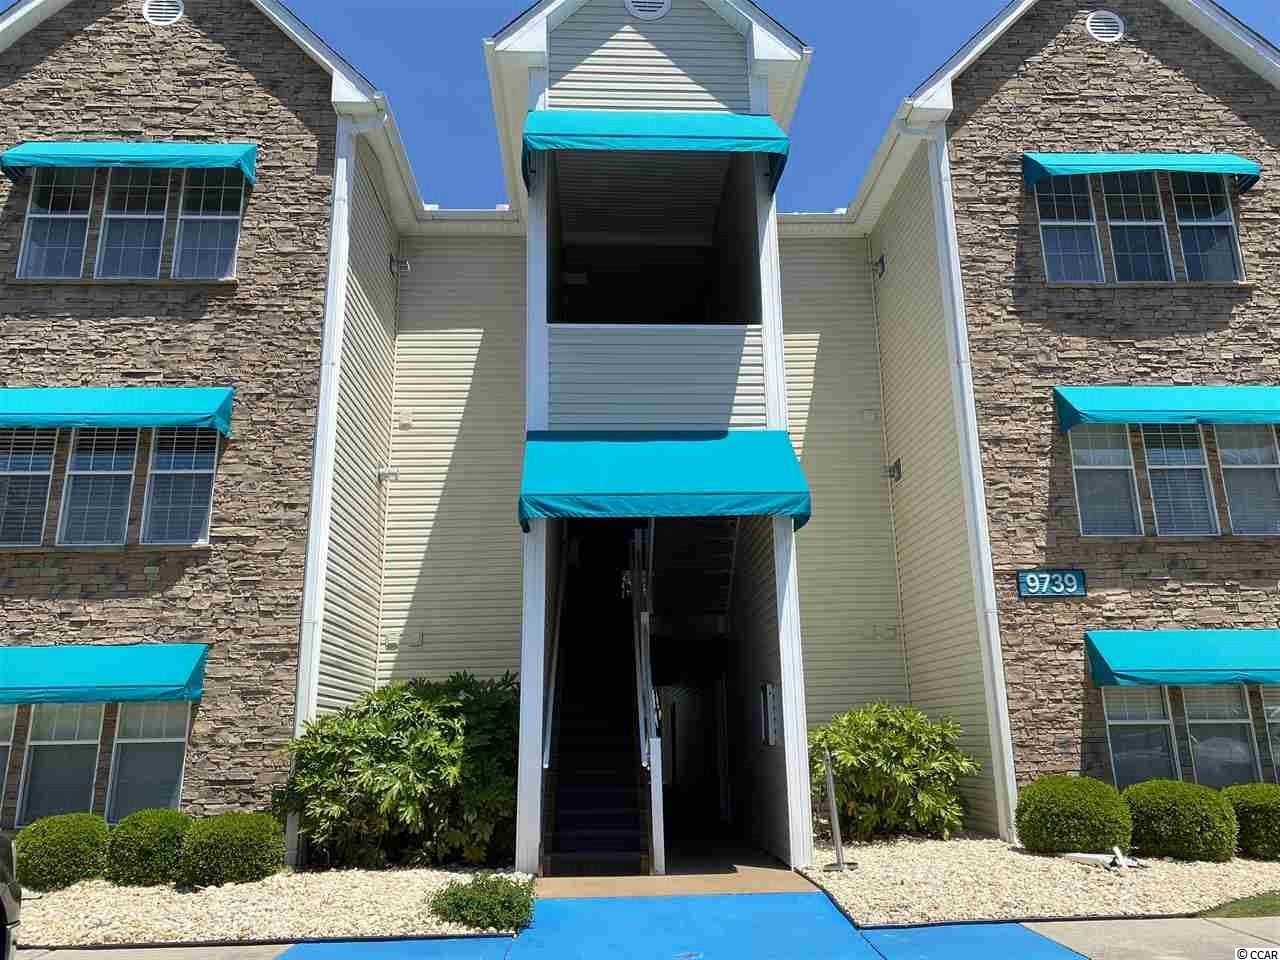 Close to the Beach. A One Bedroom, One full Bath Condo with an open concept and 9 ft. ceilings. Located in the Arcadian section of Myrtle Beach. Unit features new laminate flooring in the living area, tile in Kitchen and Bath area, vaulted living room ceiling, granite countertops, stainless appliances, pantry, a cozy sunroom (could be second bedroom), large master with a walk-in closet, and a separate laundry room all rooms freshly painted. Savannah shores amenities include an amazing pool, tennis courts, sand volleyball court, clubhouse, putting greens, private car washing station, an 8 port golf cart charging station, play area, dog park, and lush landscaping and the development is gated. Private garages are available for a fee.